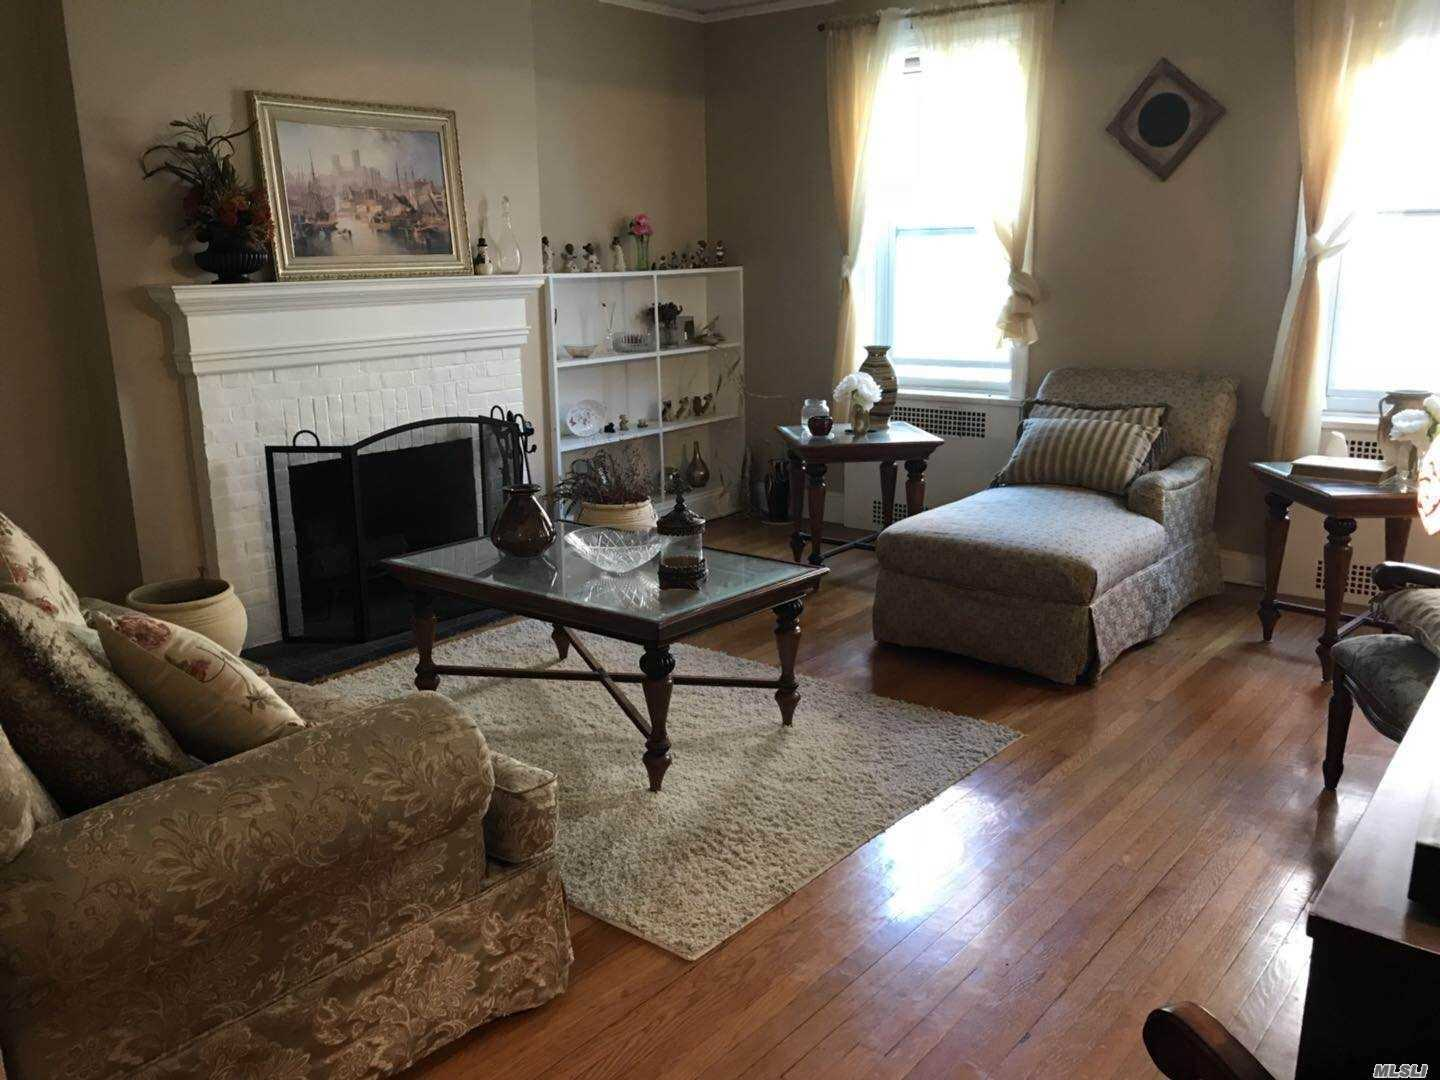 Nice 1 Bedrooms Apartment Located On A Quiet Block With Large Lr, Large Master Br, Bonus Room/Computer Room, Hardwood Floor, Some Furniture Is Included. Laundry In Building. Street Parking.It Is Co-Op, Need Board Approve.